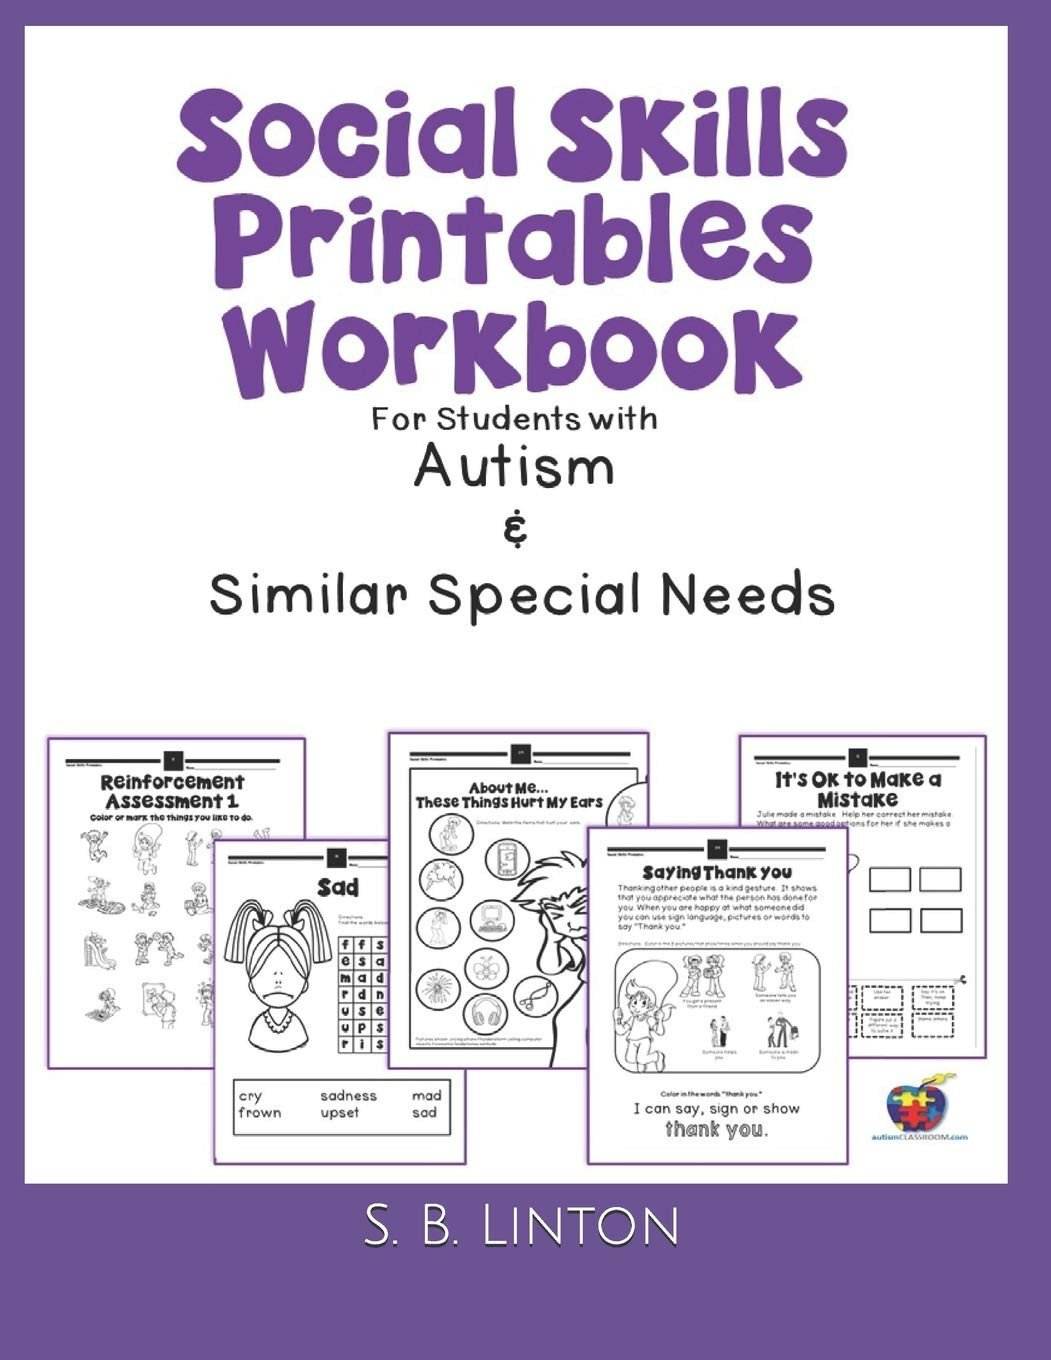 Autism Life Skills Worksheets social Skills Printables Workbook for Students with Autism